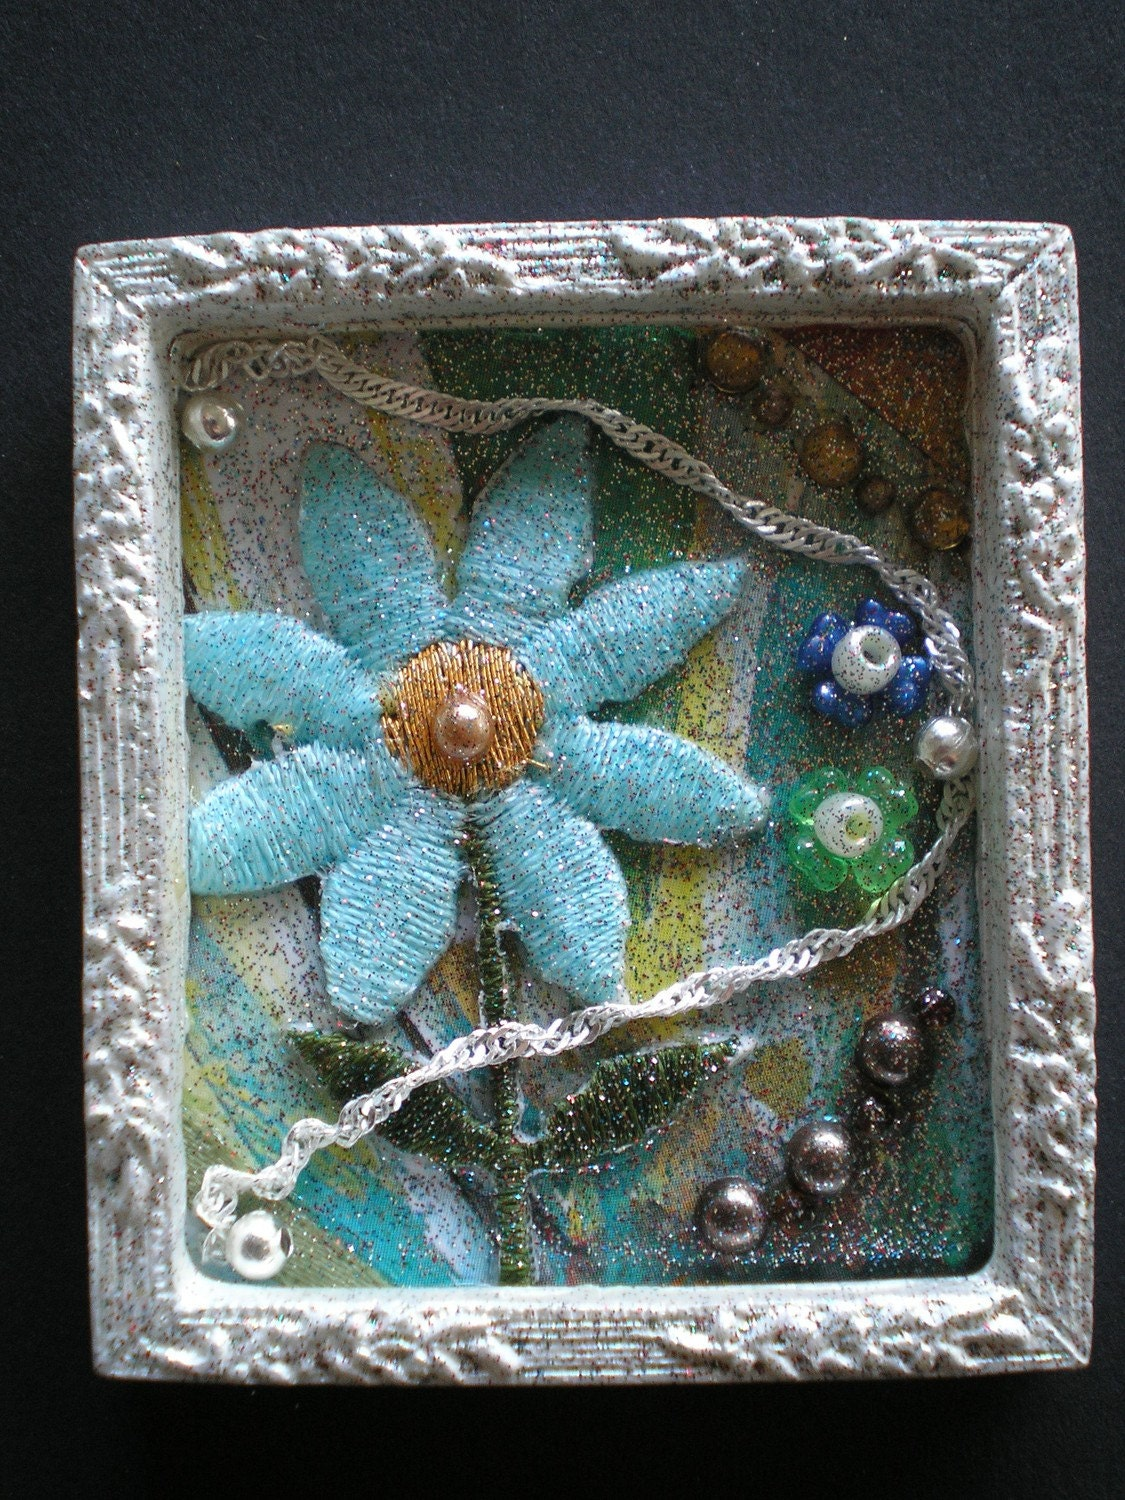 OUTSIDE - Tiny Collage Mixed Media OOAK Framed Signed with Beads Flowers Silver Chain